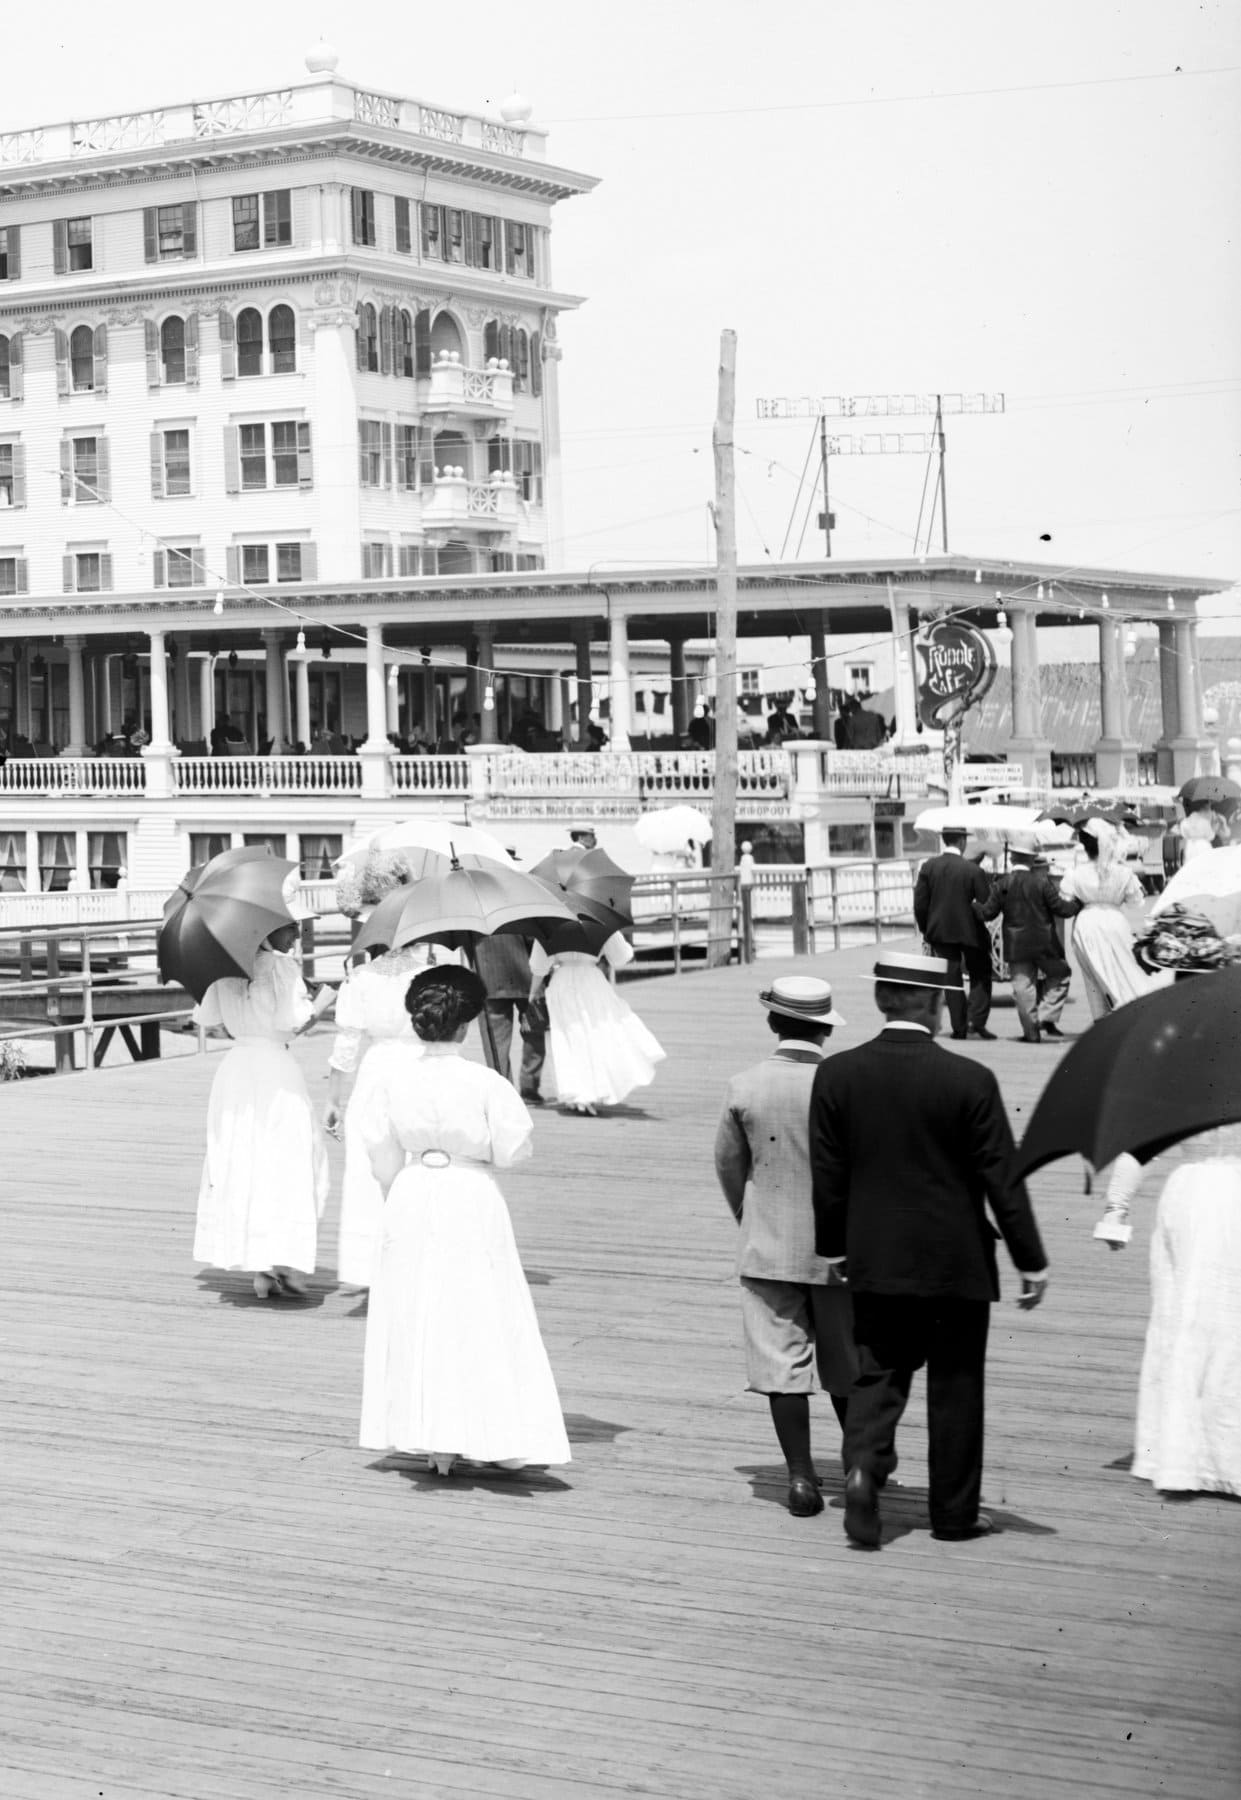 Old Atlantic City at the turn of the century (2)